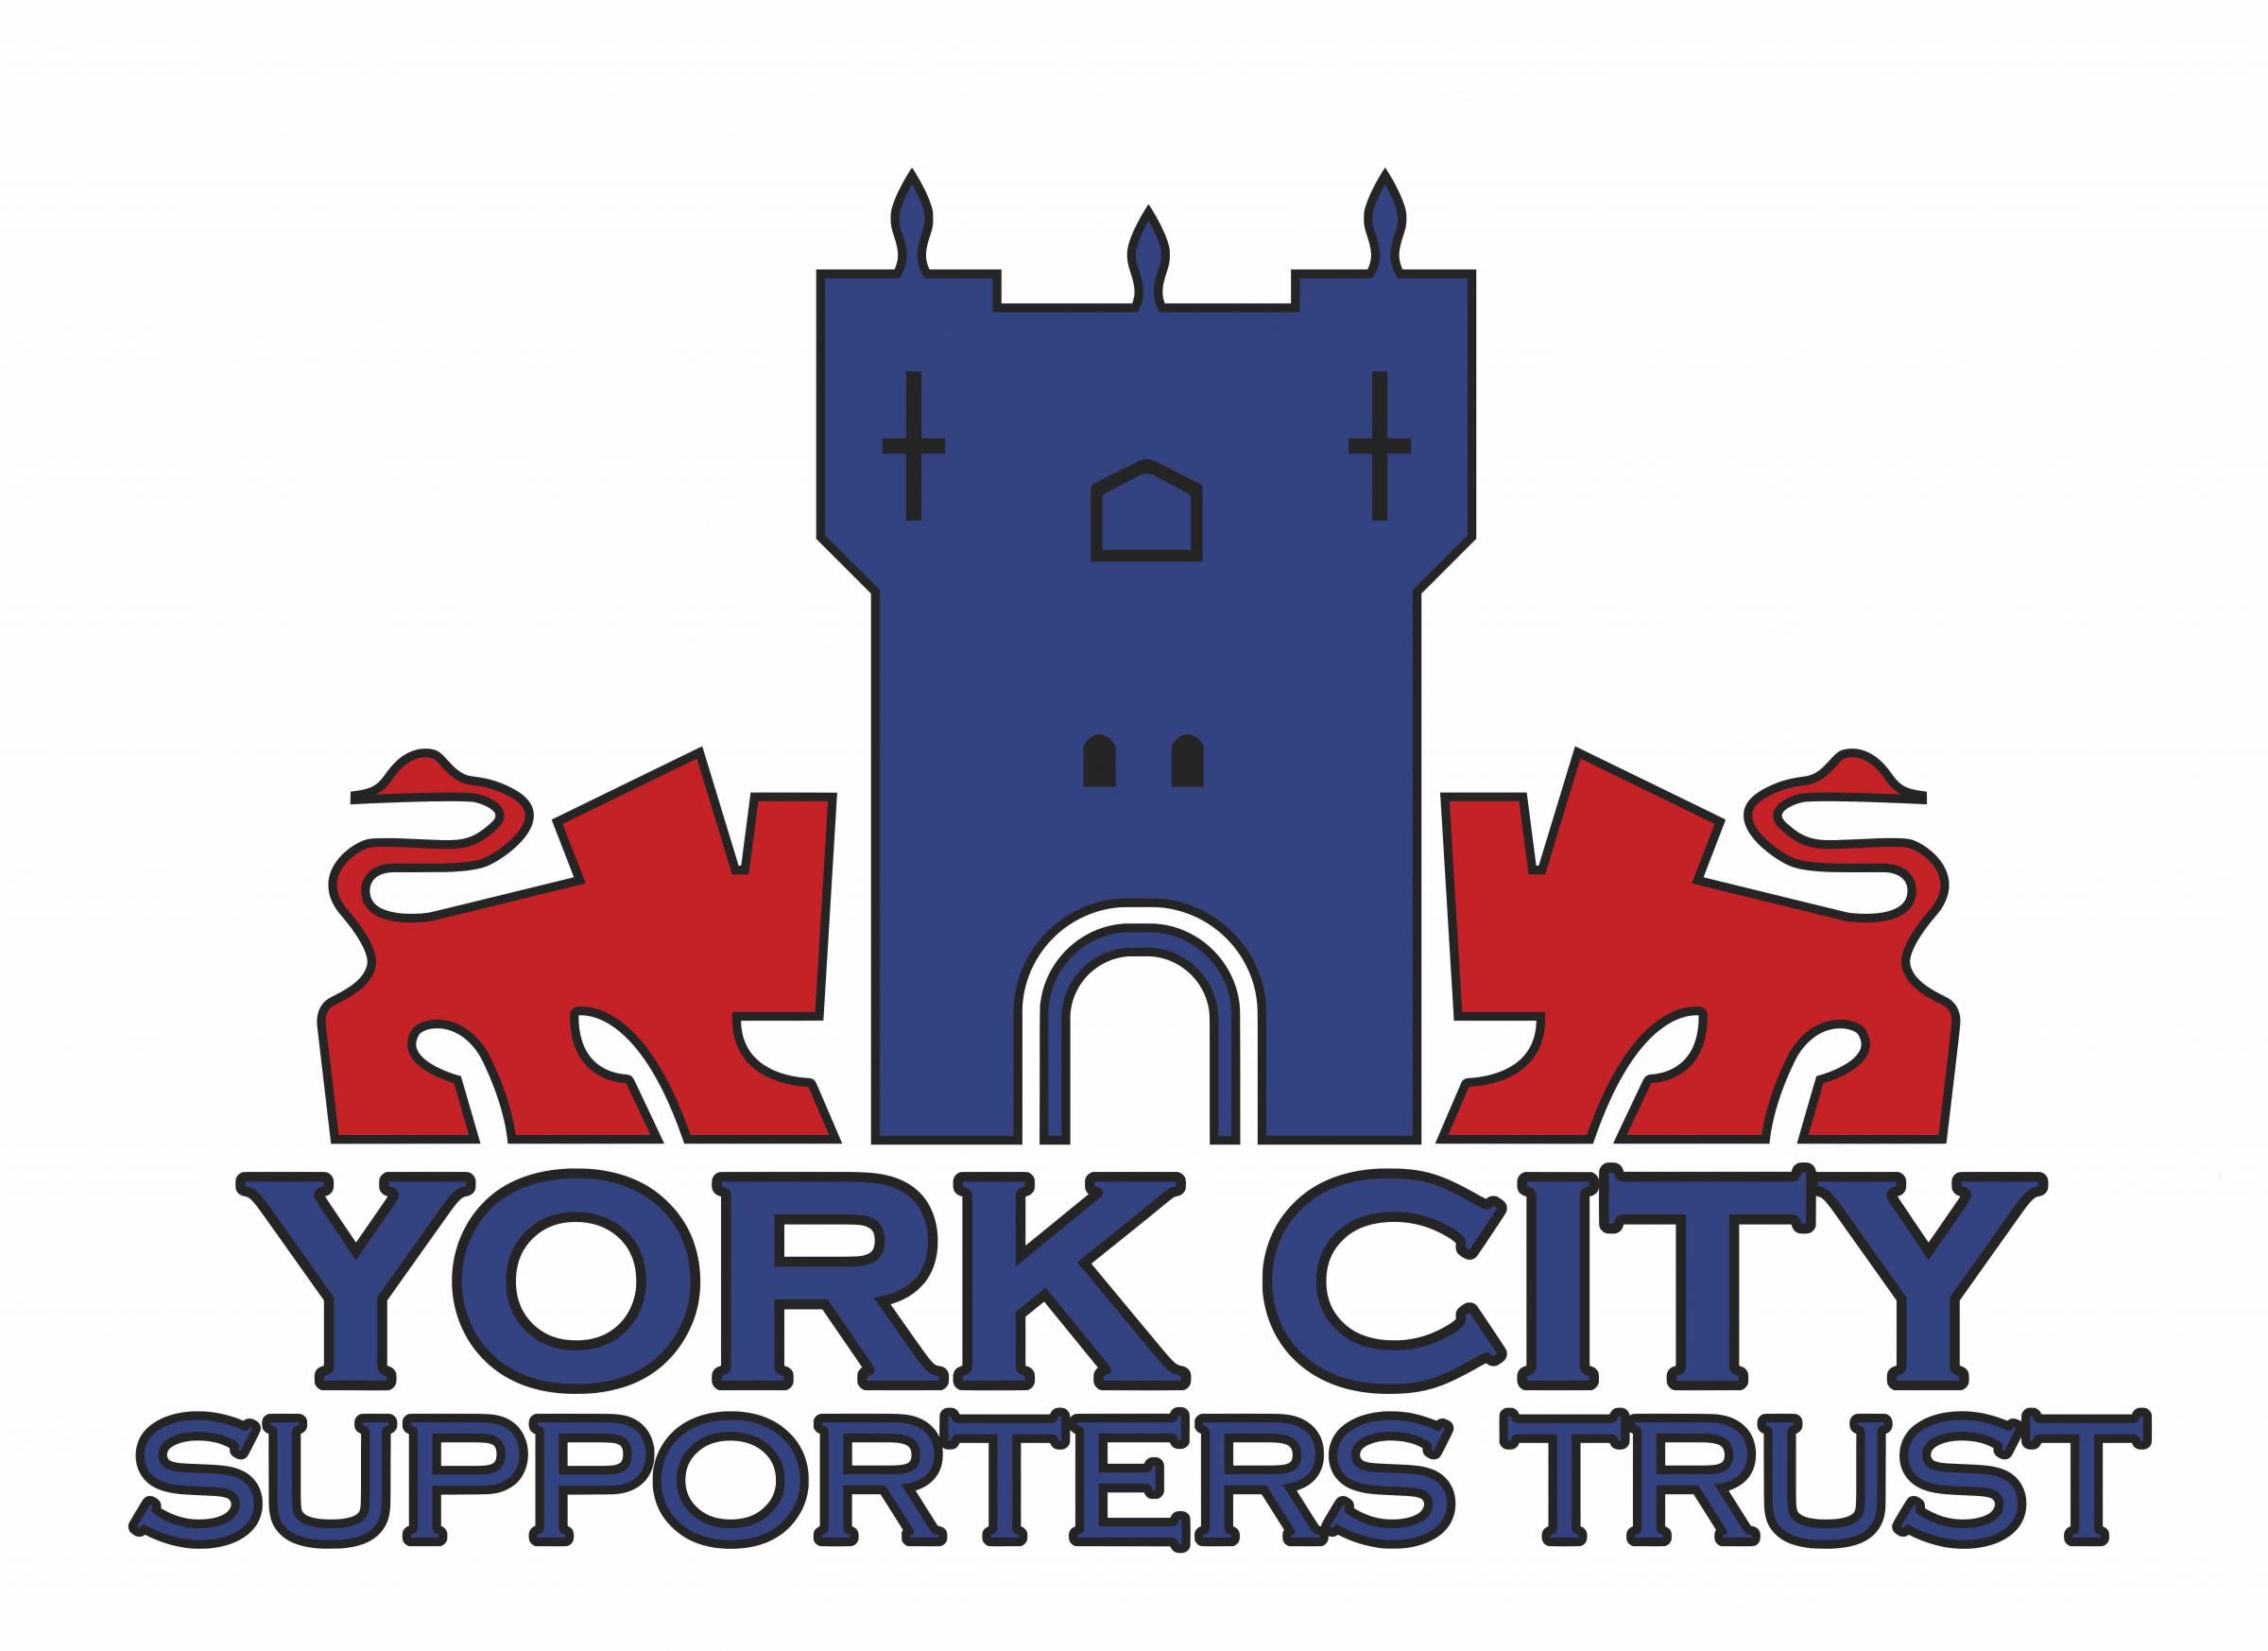 TRUST TOURNAMENT: York City Supporters' Trust will stage their inaugural FootGolf competition next month